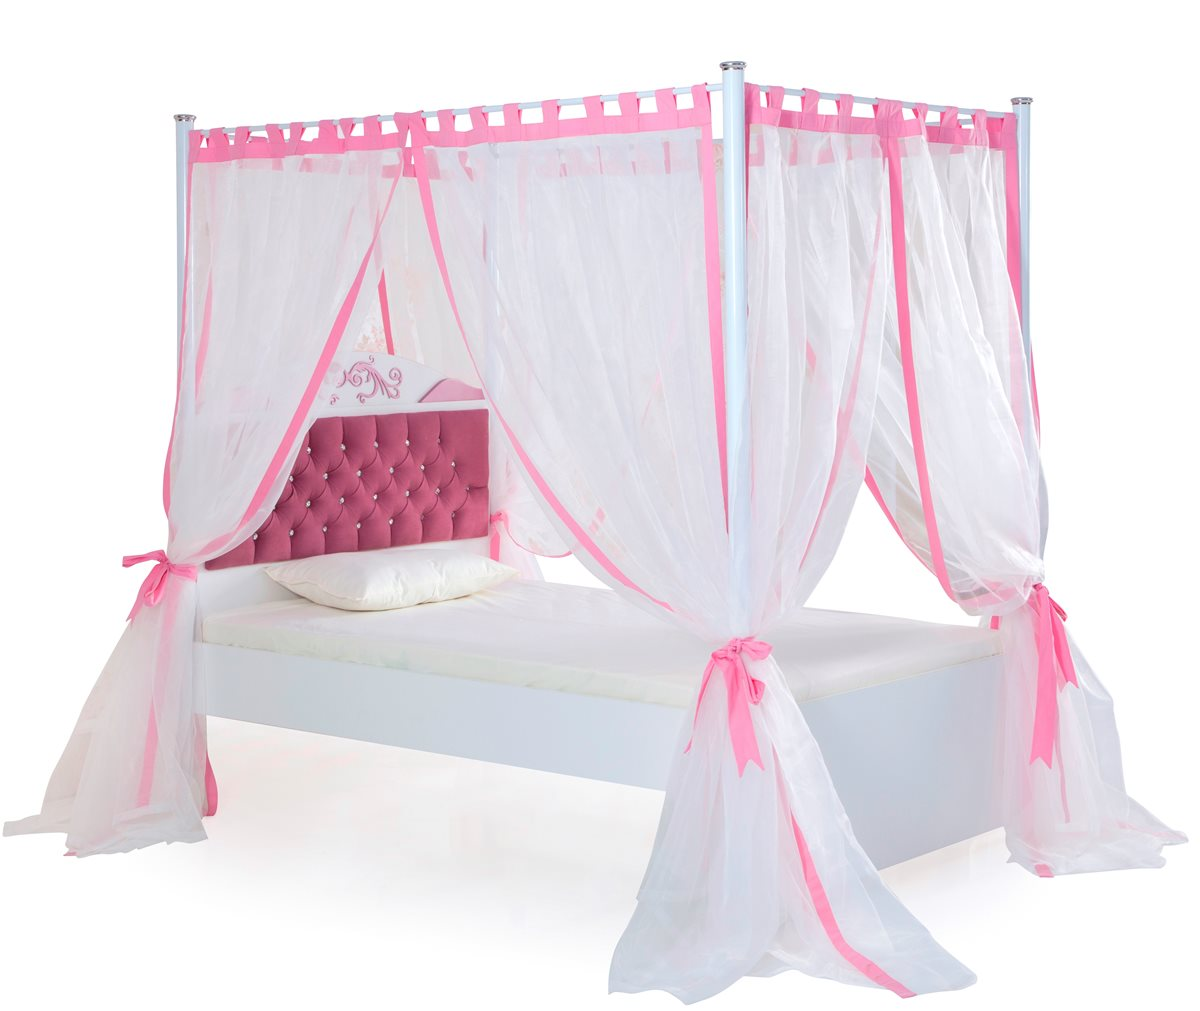 pretty gro es bett mit himmel 120 x 200 kinderbett bett rosa wei ebay. Black Bedroom Furniture Sets. Home Design Ideas